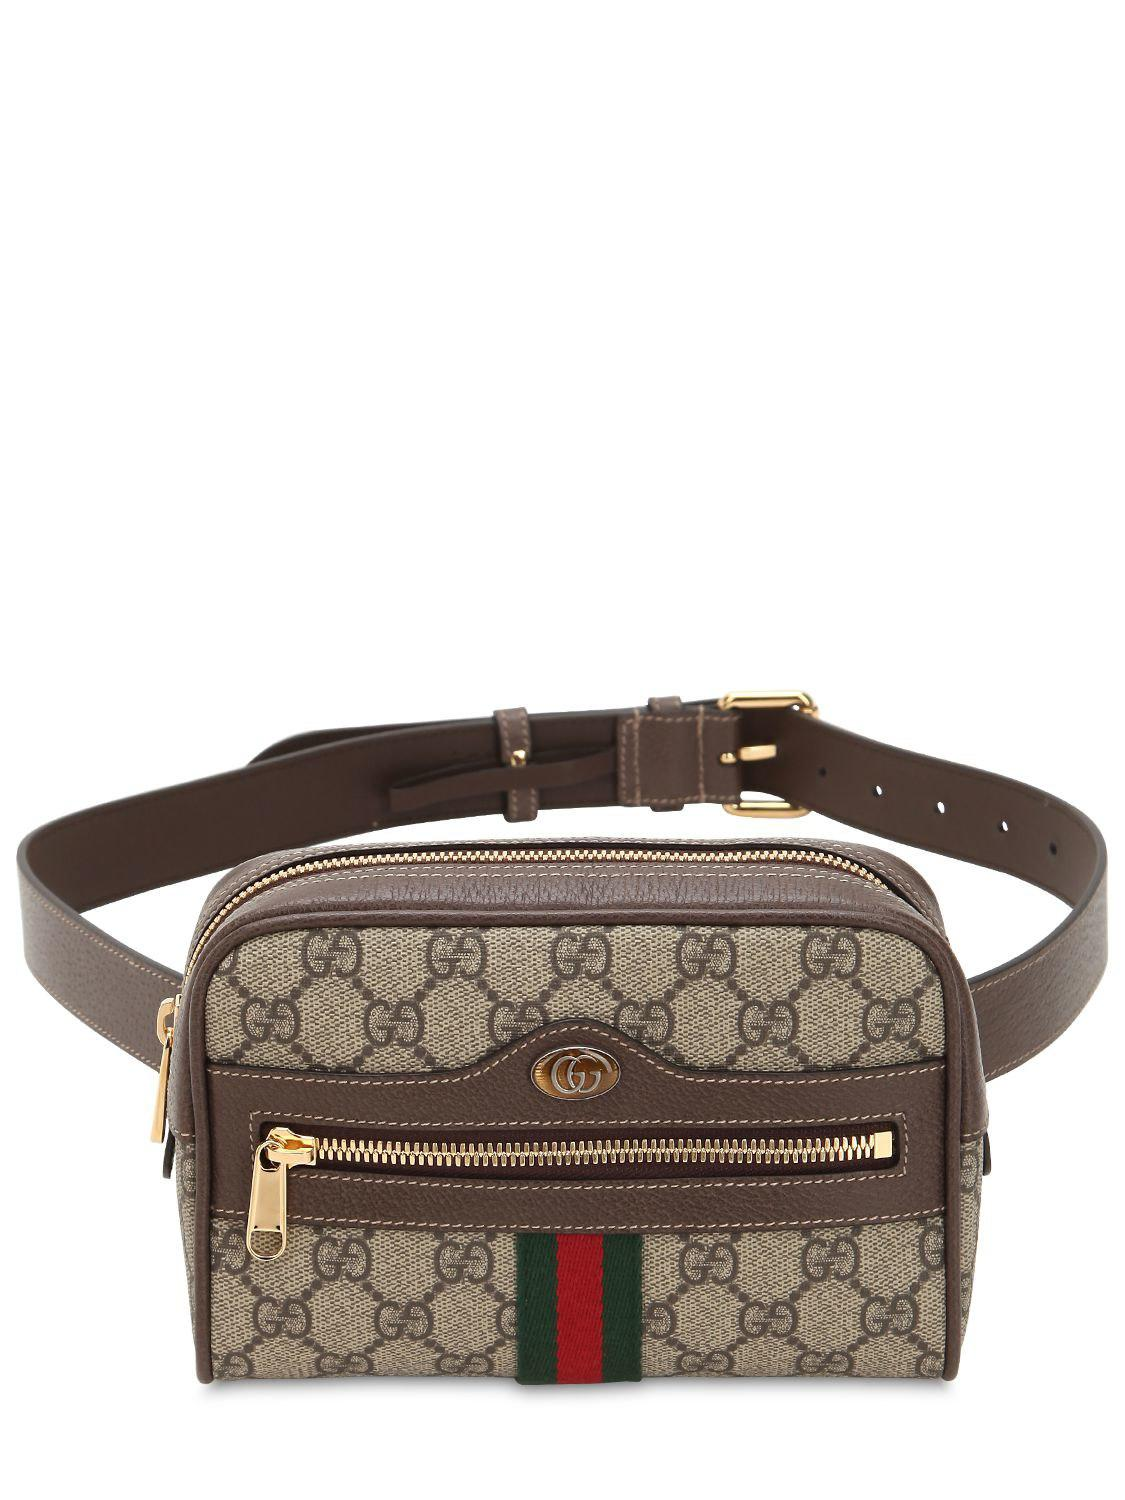 c1712db6767 Gucci Ophidia Gg Supreme Belt Bag in Brown - Save 11% - Lyst